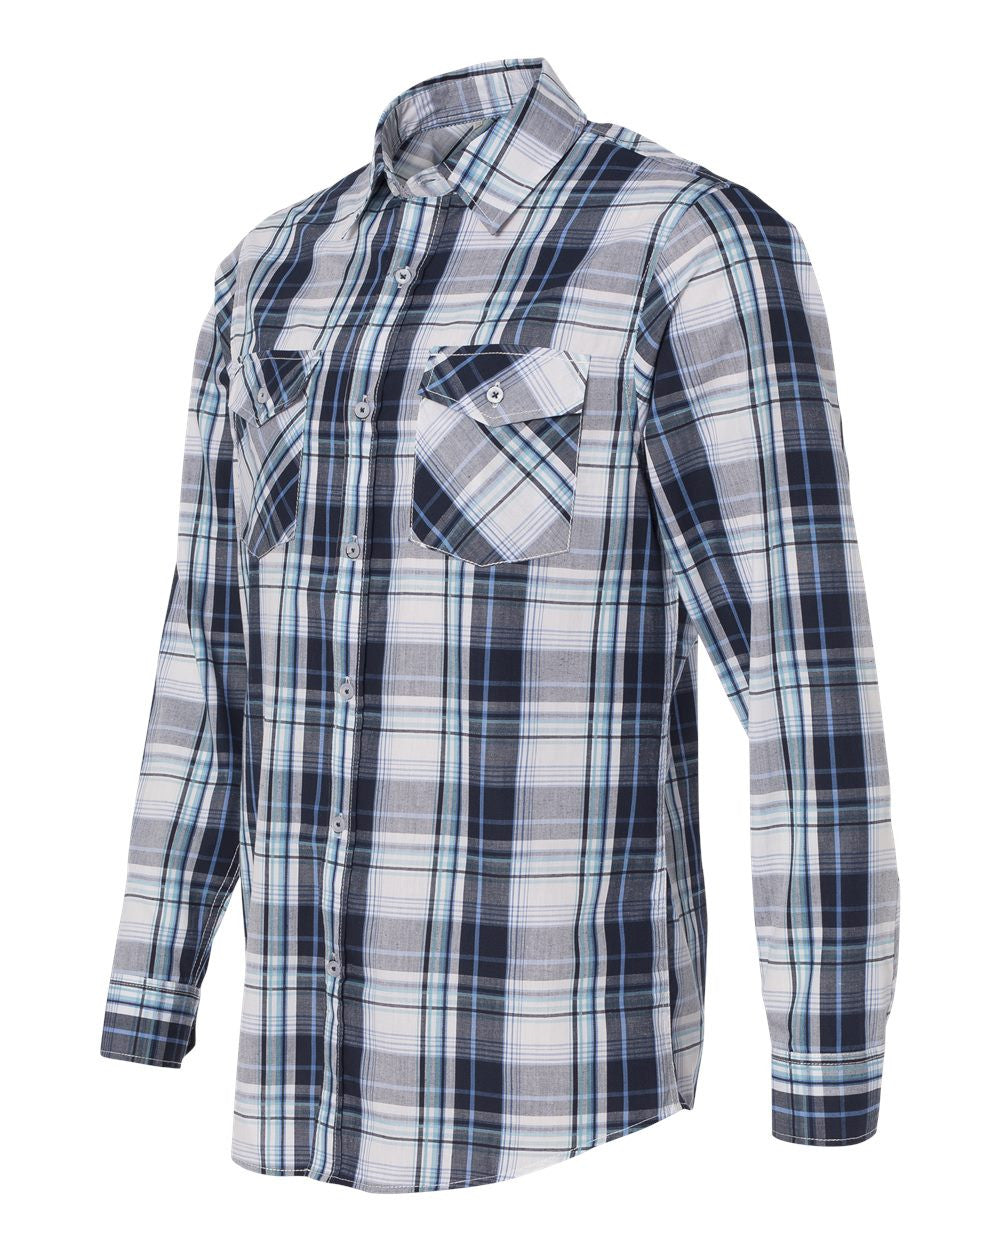 Long Sleeve plaid Shirt by Burnside